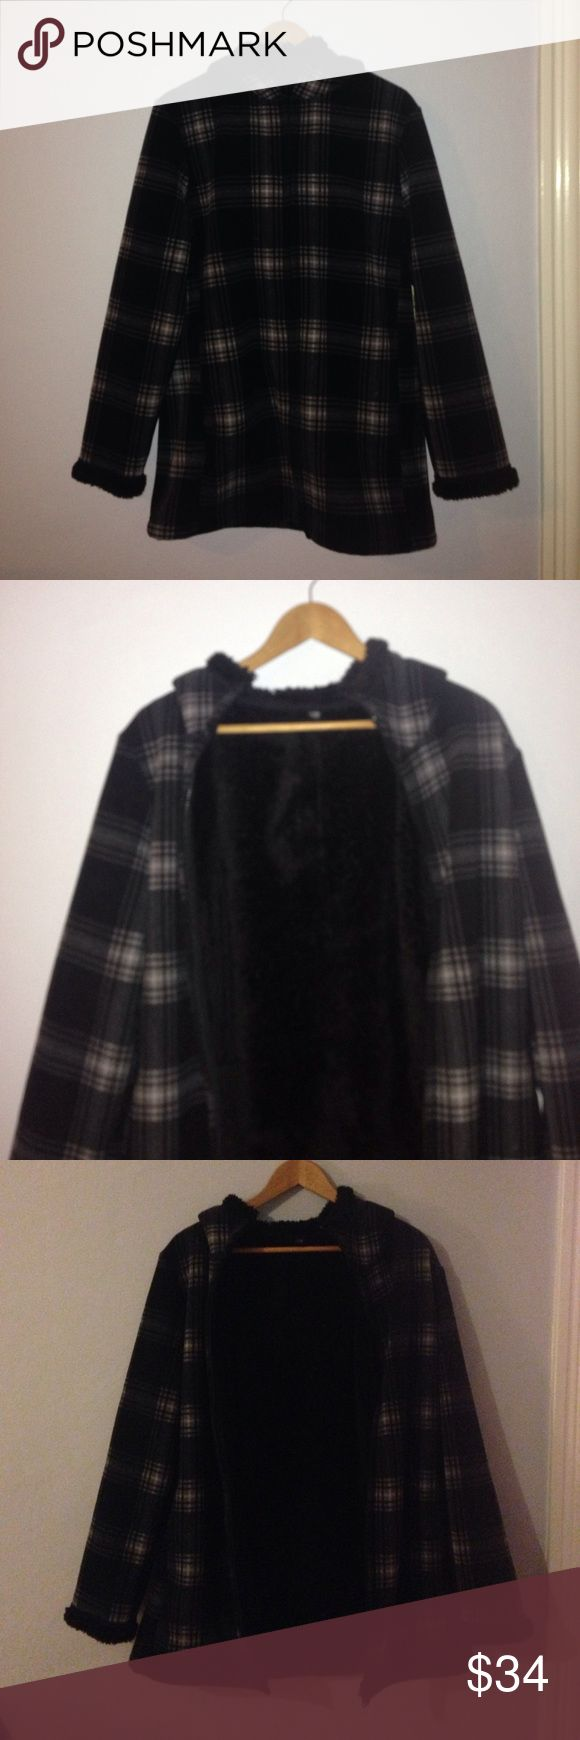 Uniqlo plaid jacket Uniqlo plaid black and white fuzzy jacket. Great for snow and the cold- very cozy! Women's size large. Never worn! Has pockets and a hood Uniqlo Jackets & Coats